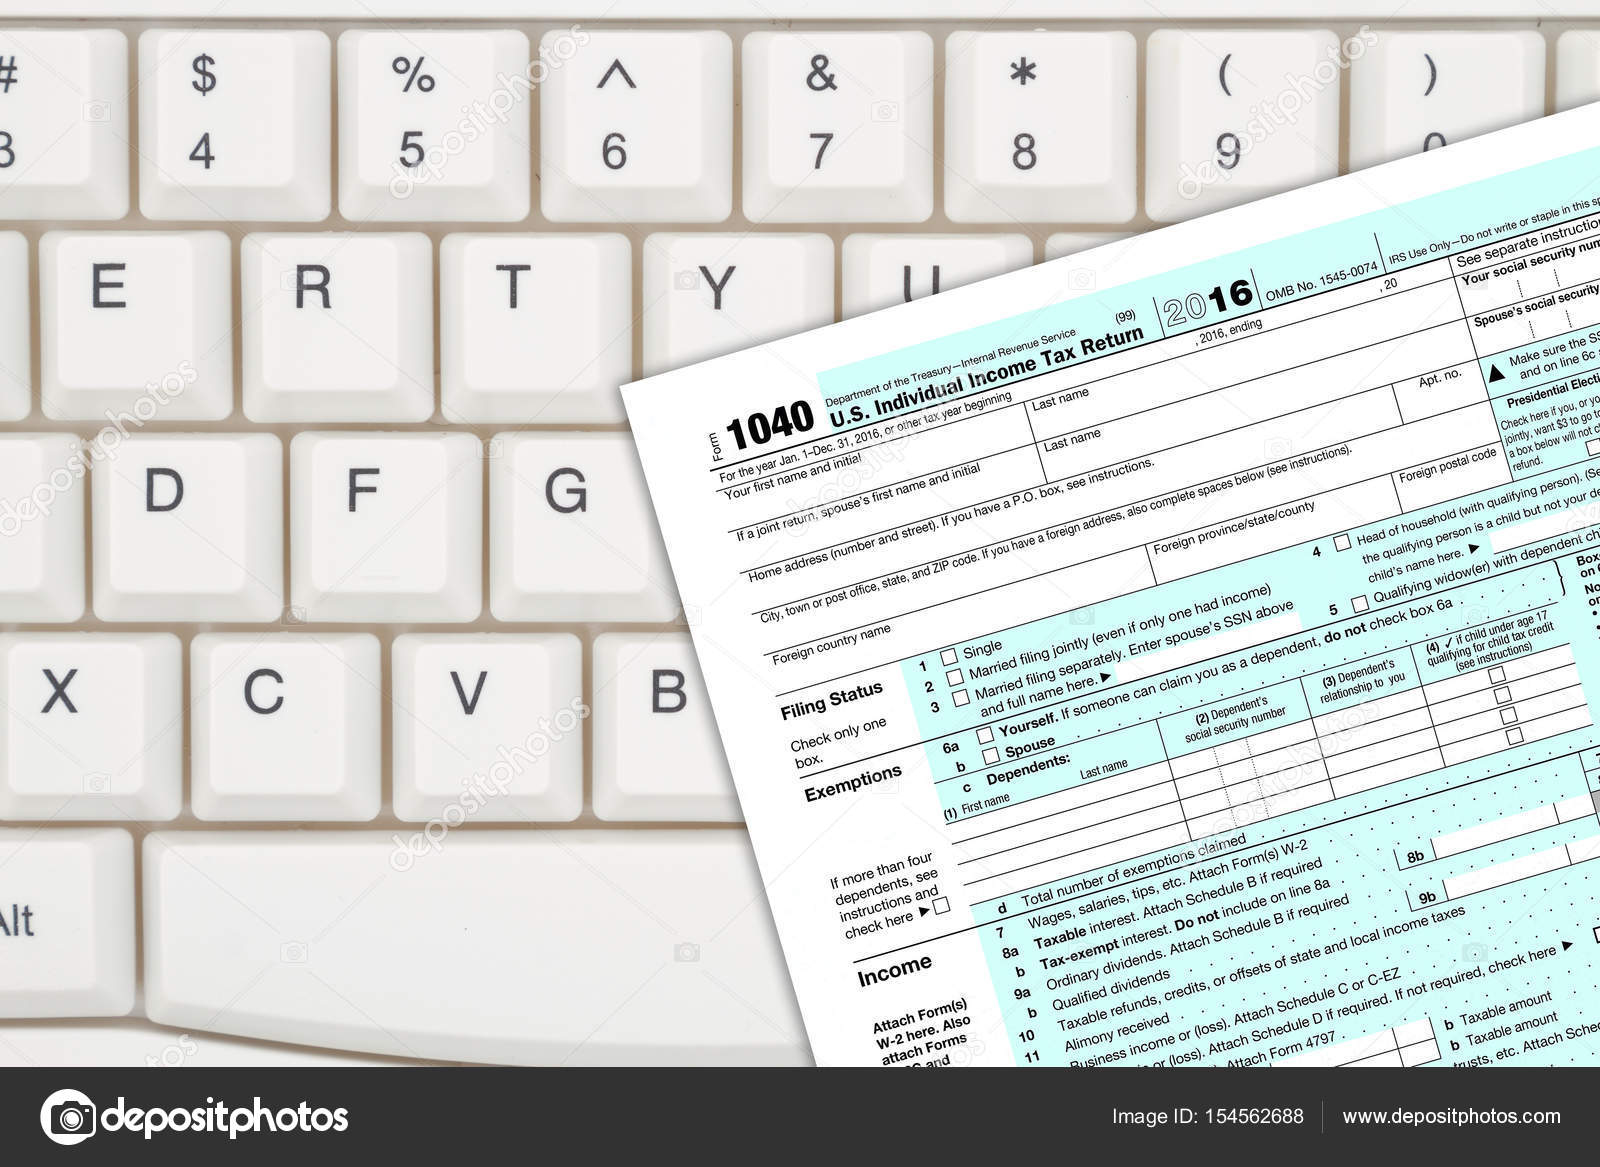 A Us Federal Tax 1040 Income Tax Form Stock Photo Karenr 154562688